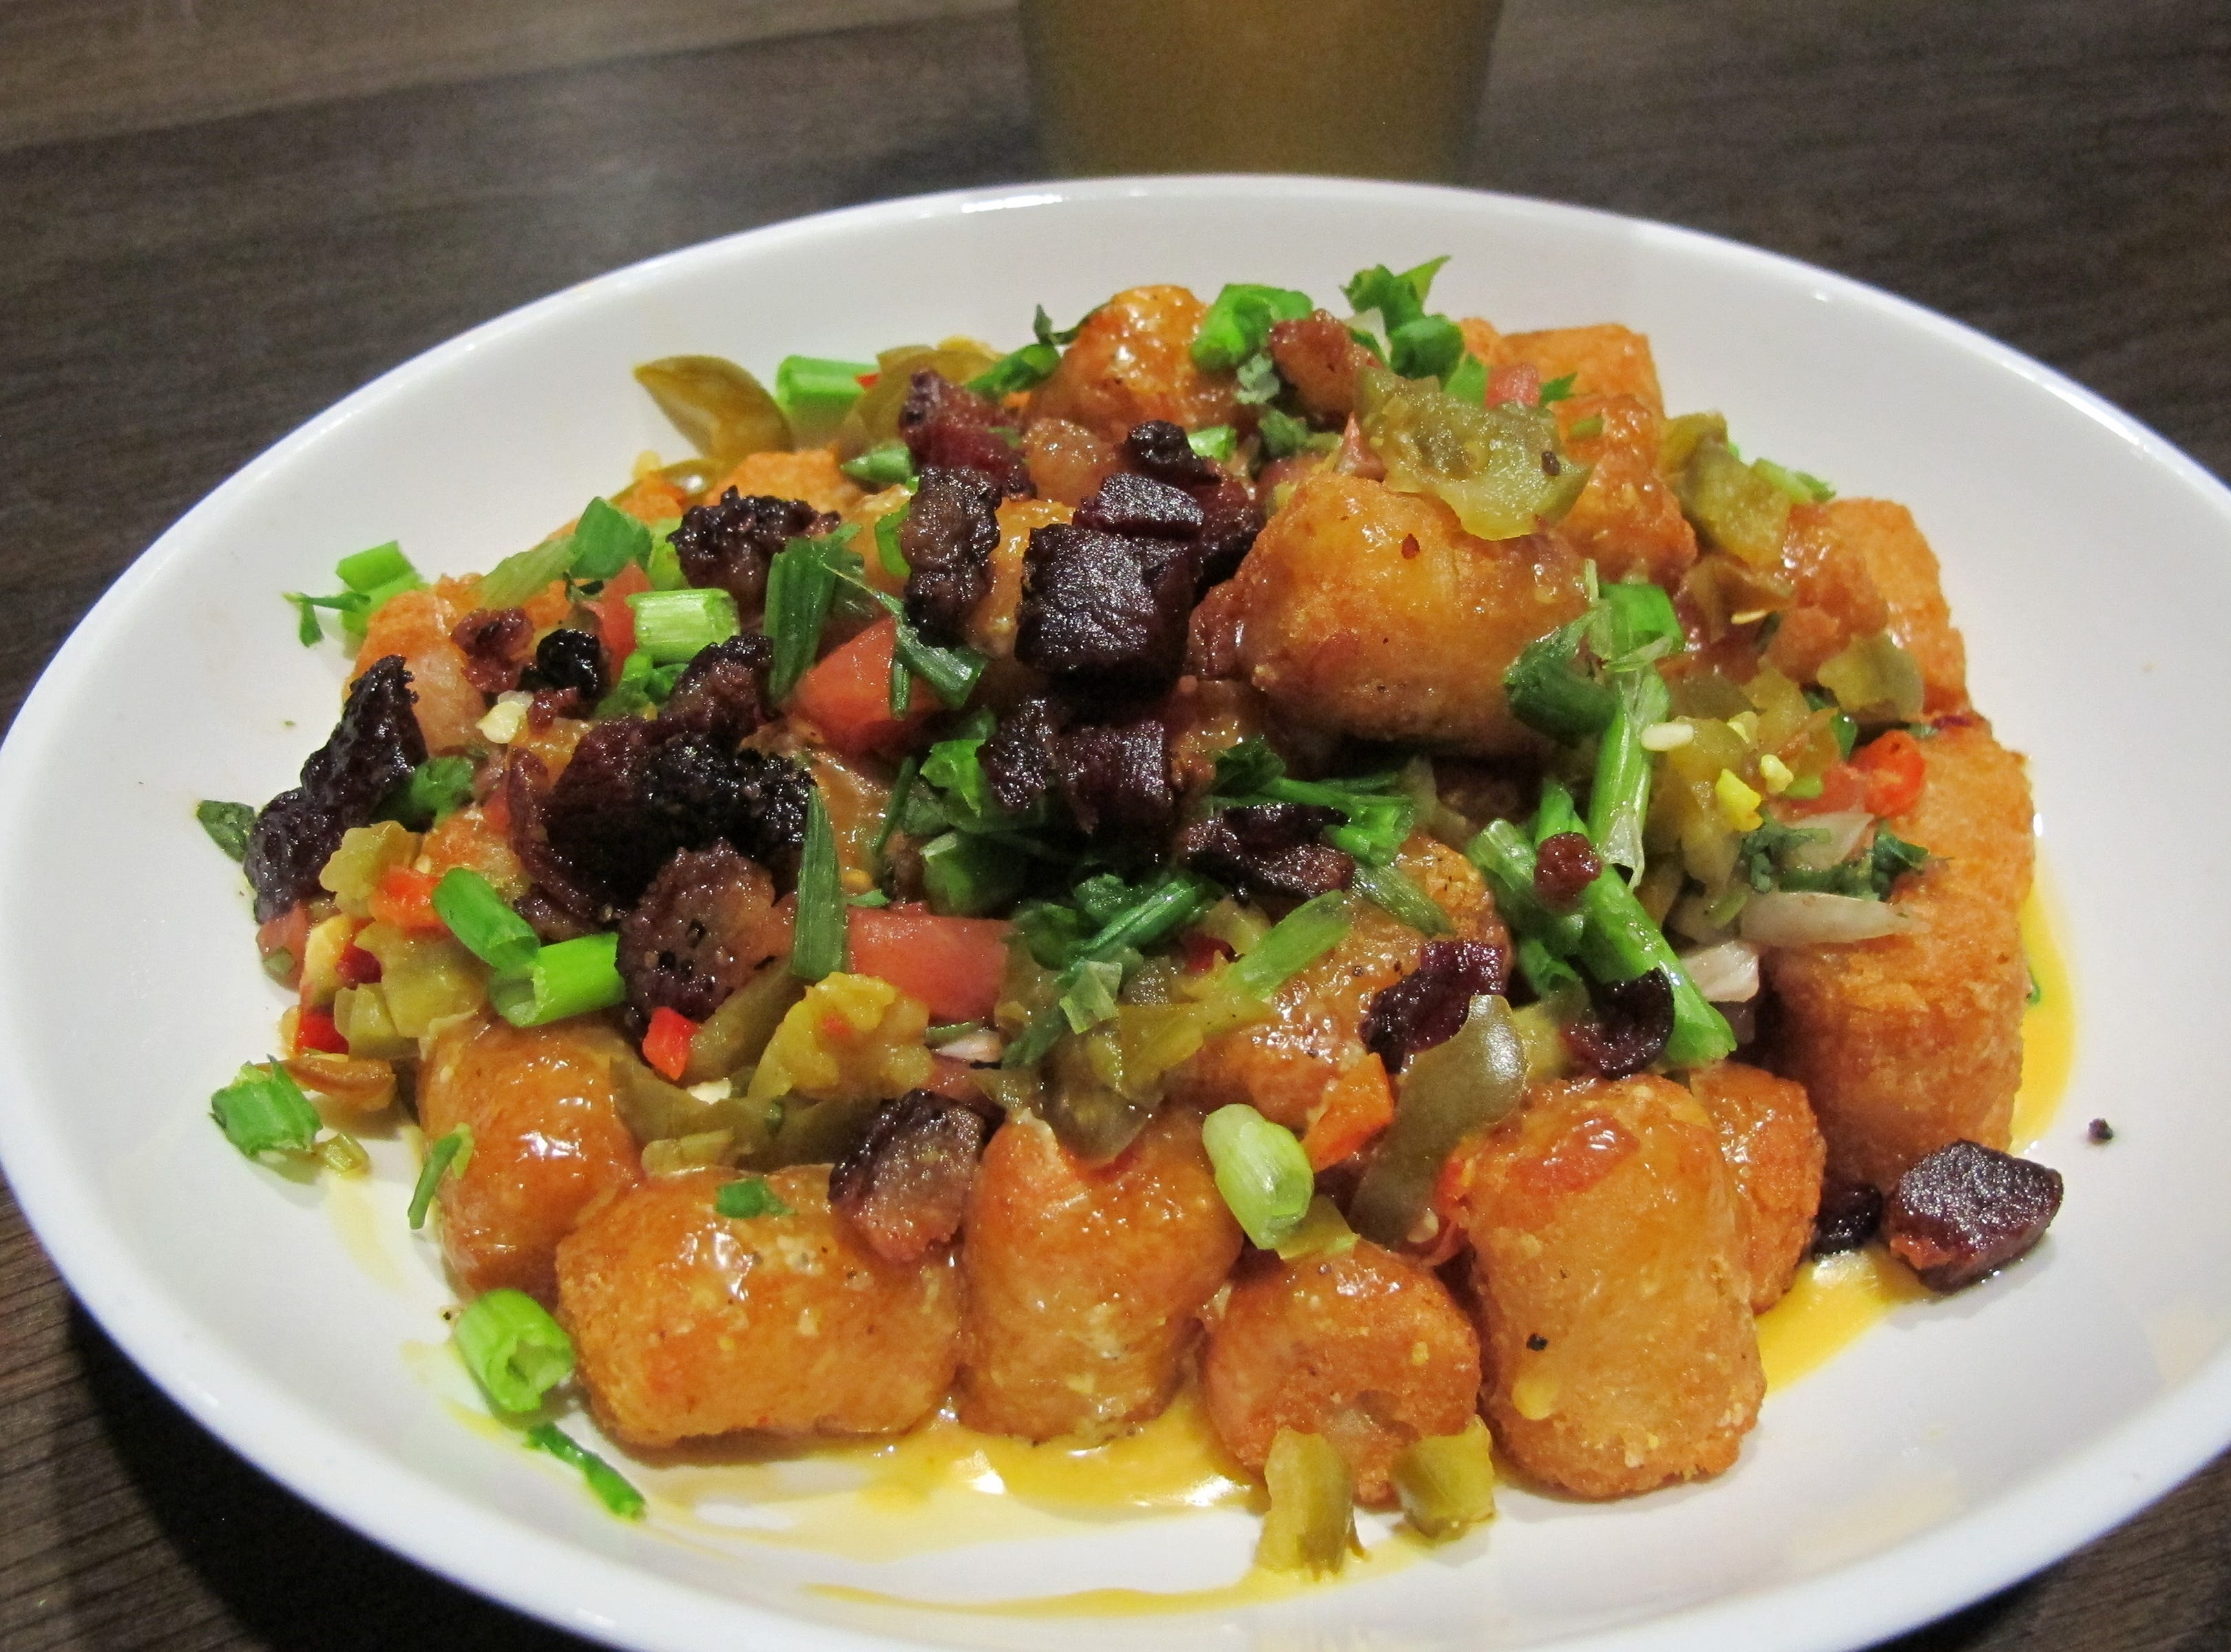 Loaded Tator Tots with bacon chunks, beer cheese, green onions, peppers and pico de gallo is one of the favorites on the menu of the new Bone Hook Brewing Co. in North Naples.